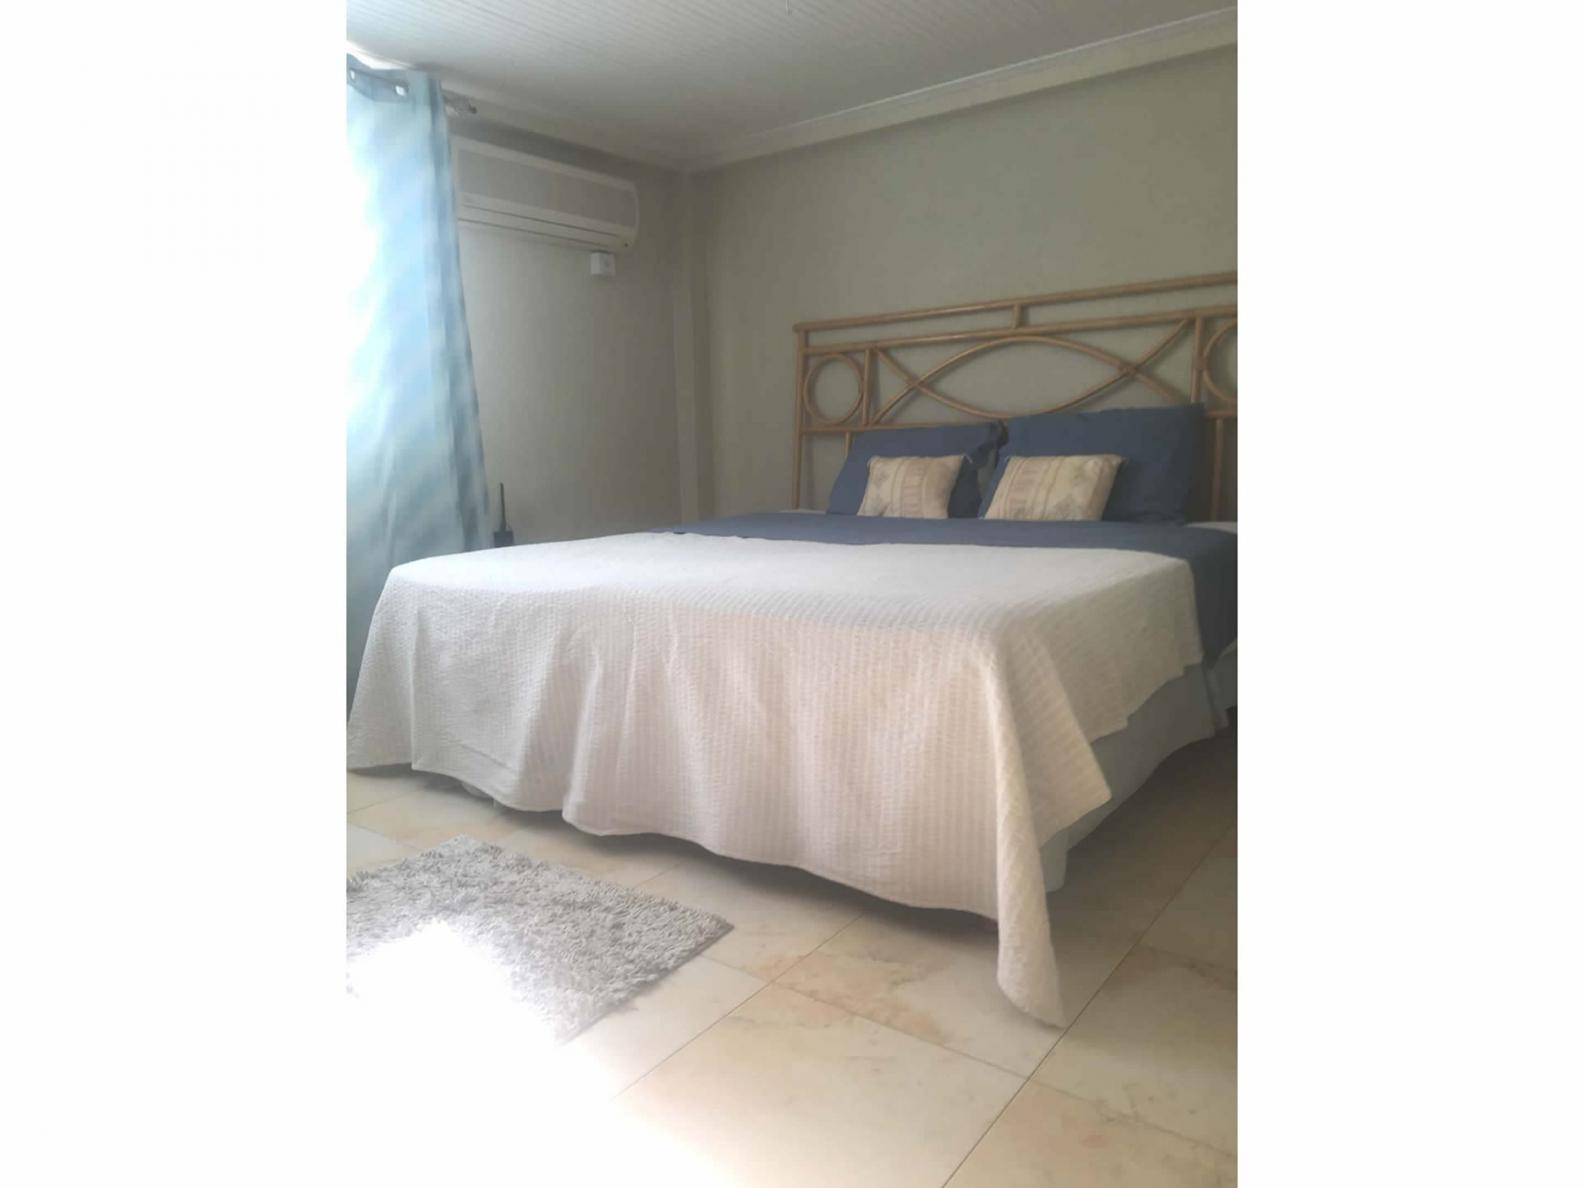 Spacious bedroom with double bed, A/C and built-in wardrobe